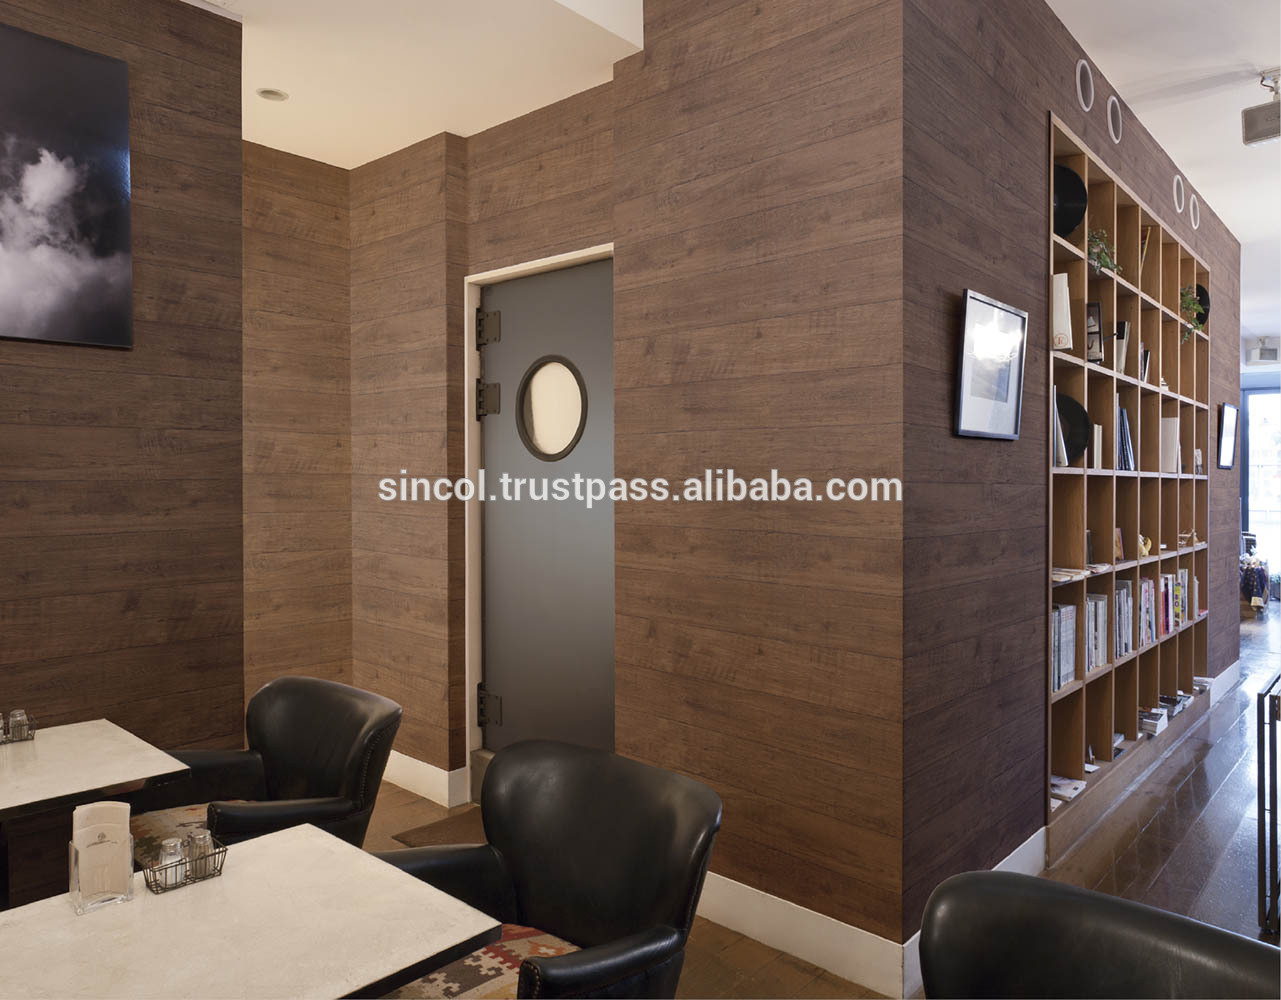 Easy to use and Durable beauty Wallpaper at reasonable prices OEM 1281x1000